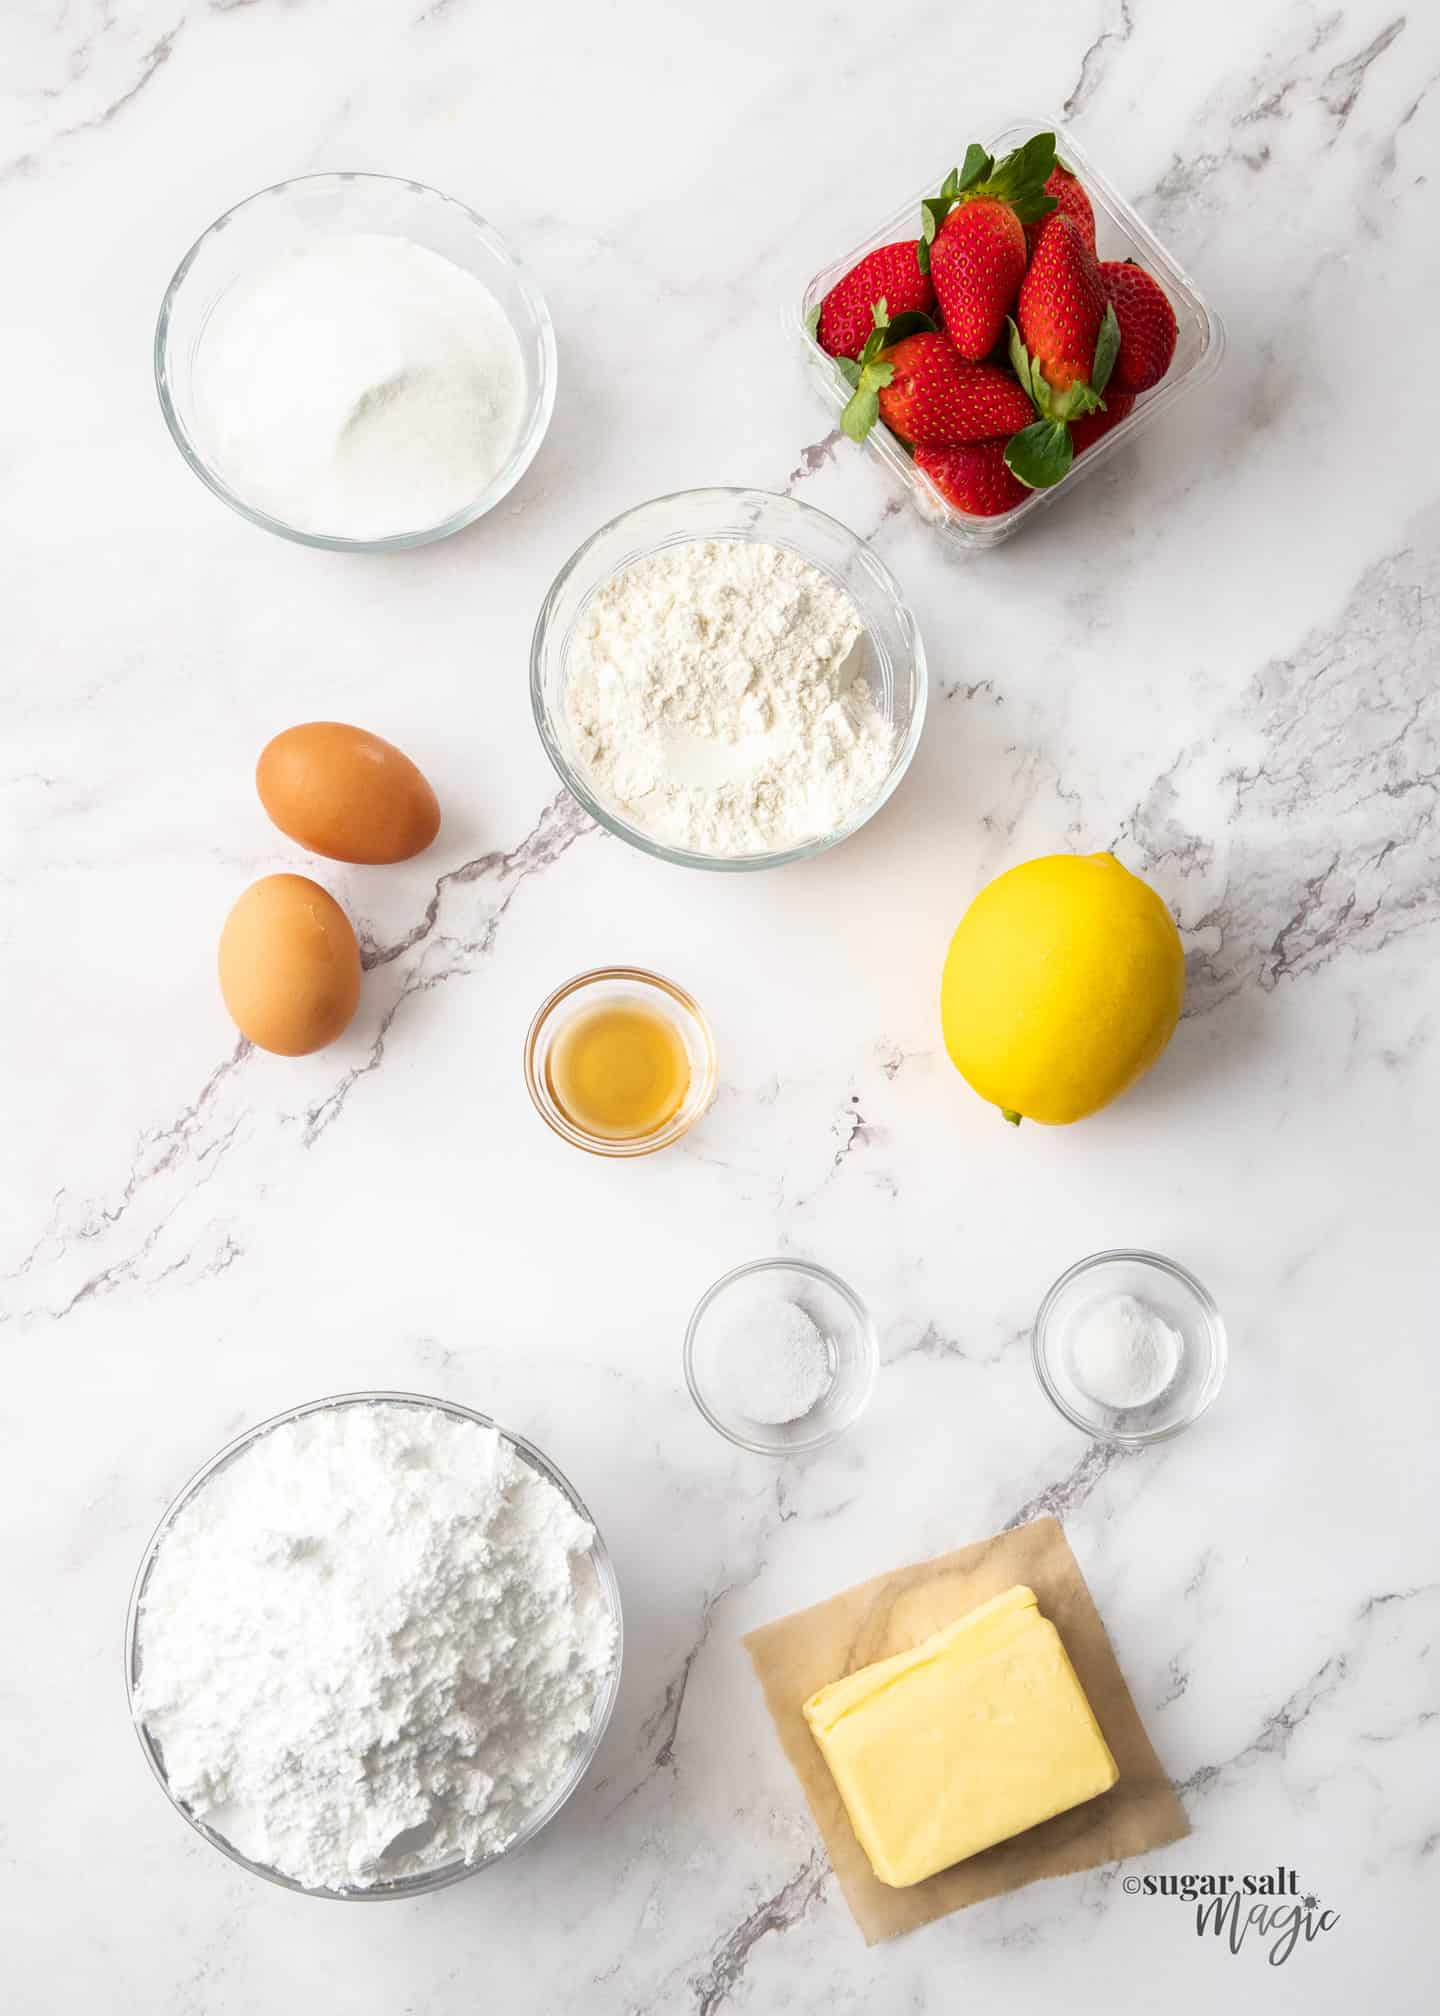 Ingredients for strawberry blondies on a white marble worktop.